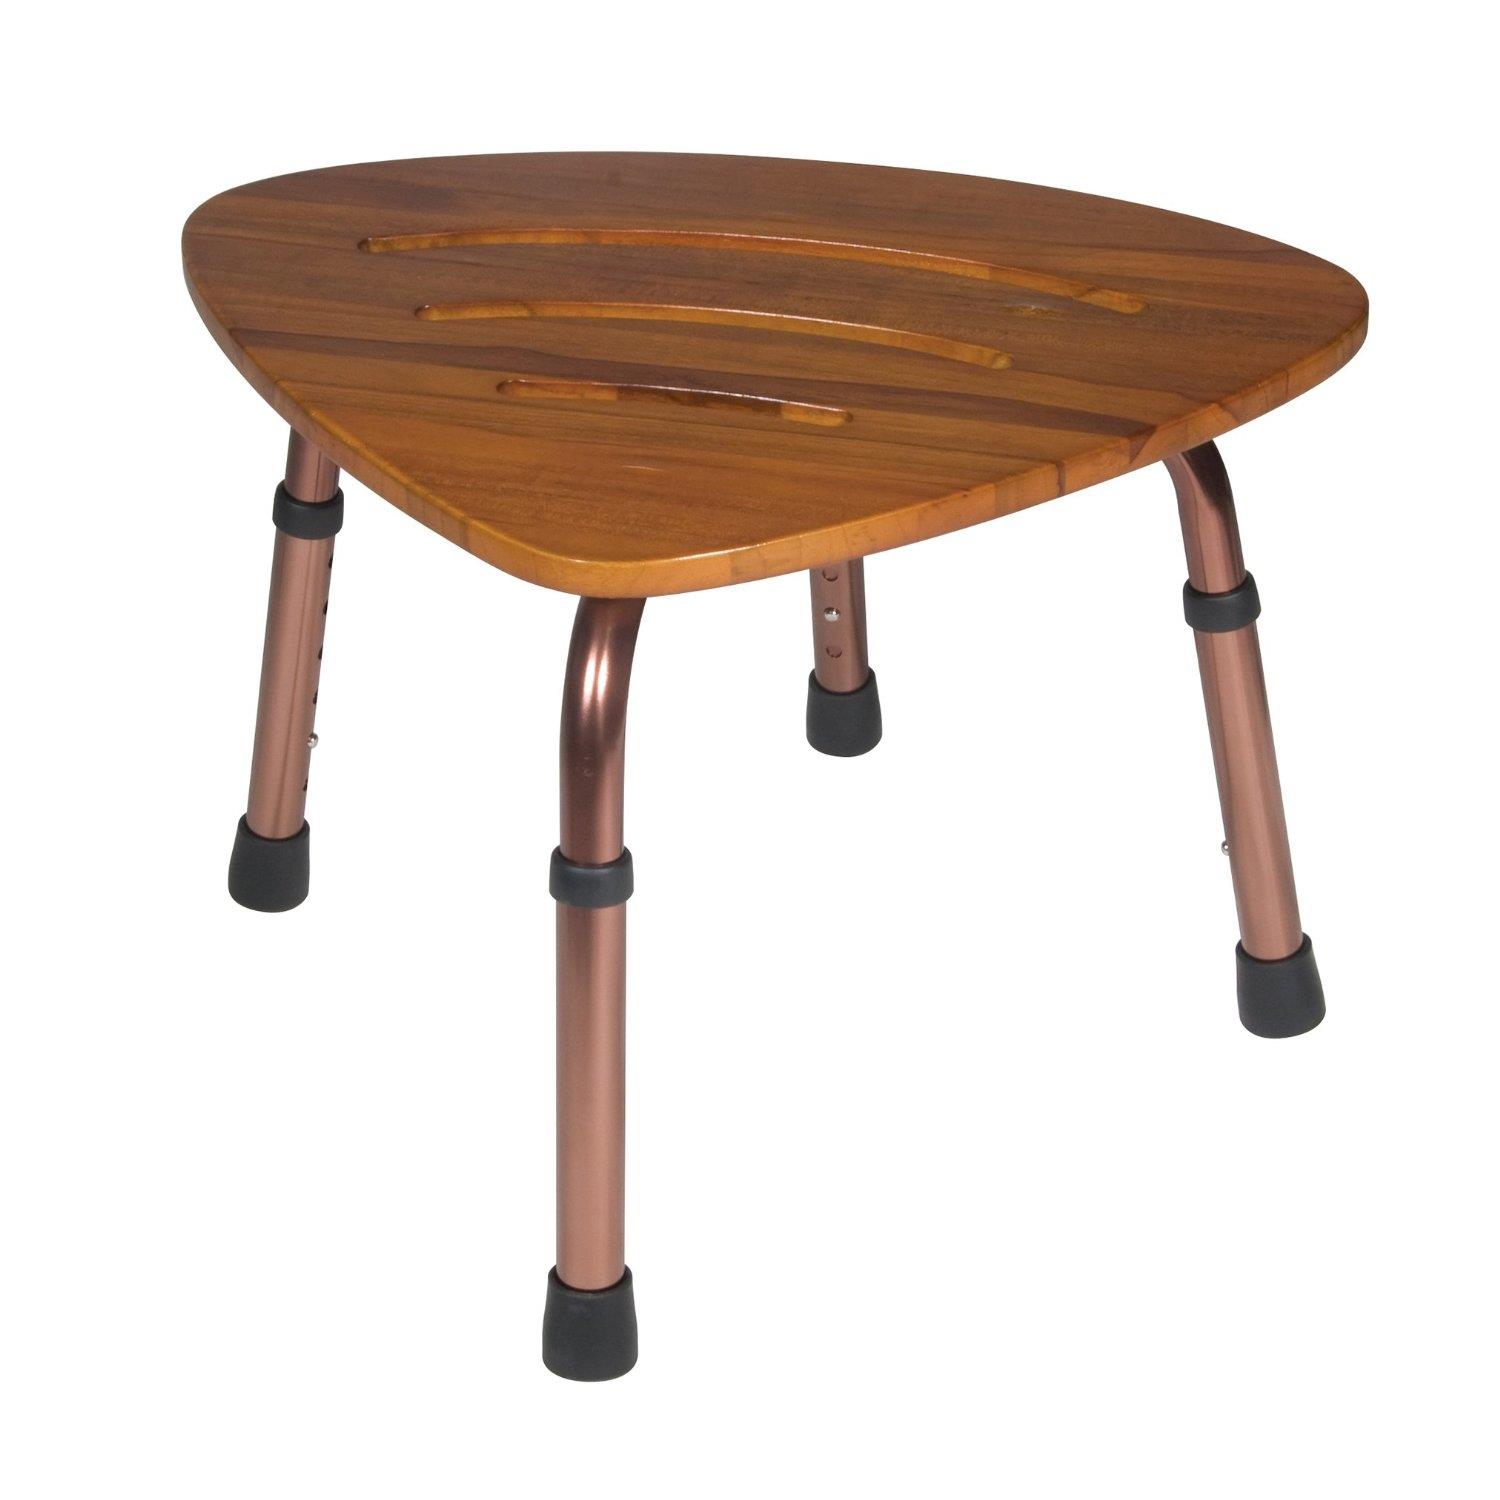 Drive medical adjustable height teak bath bench stool by oj commerce rtl12350kdr Bath bench